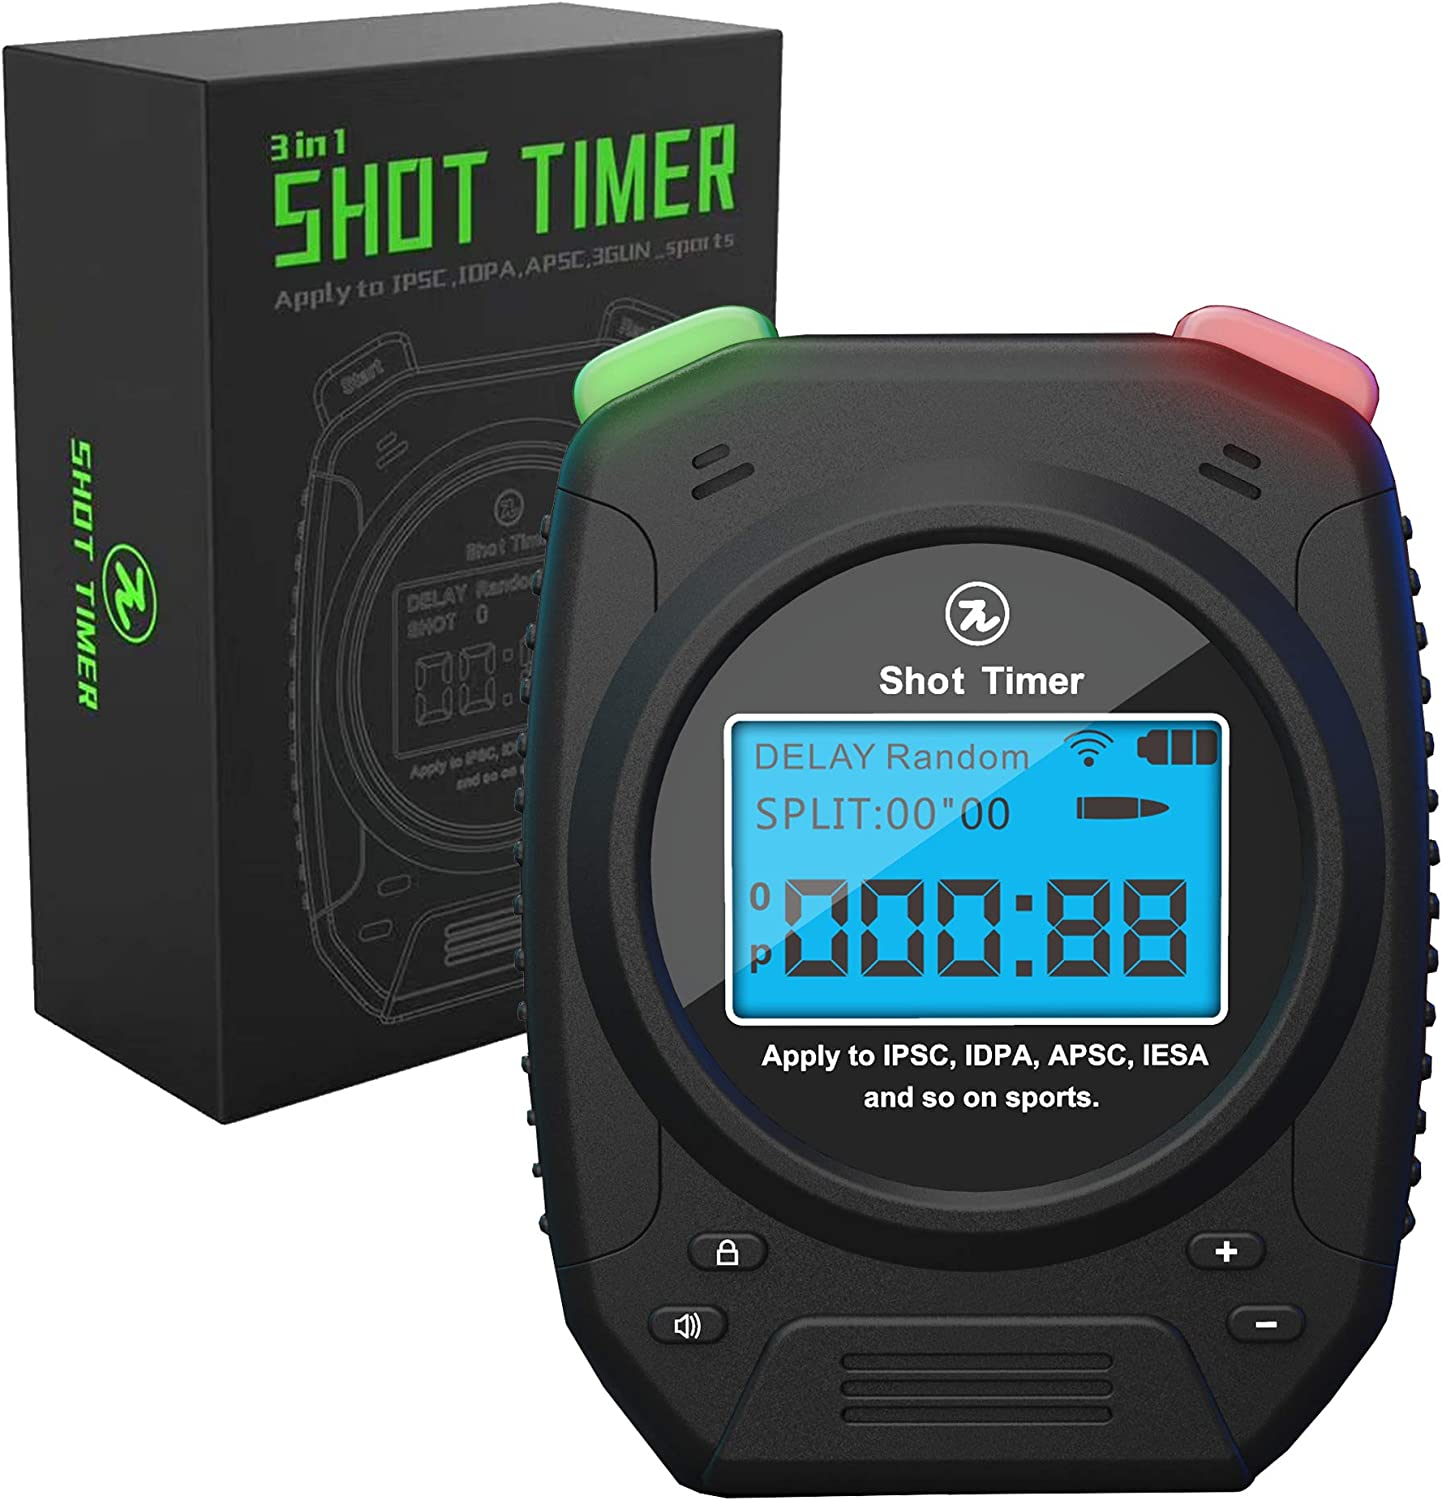 SPECIAL PIE Shot Timer - 3 in 1 Shooting Timer for Firearms Airsoft Stop Watch Perfect for Practice Shot Pistols Rifles Dry Fire in USPSA, IPSC, APSC, IDPA, 3 Gun, Steel Challenge Shot Timer